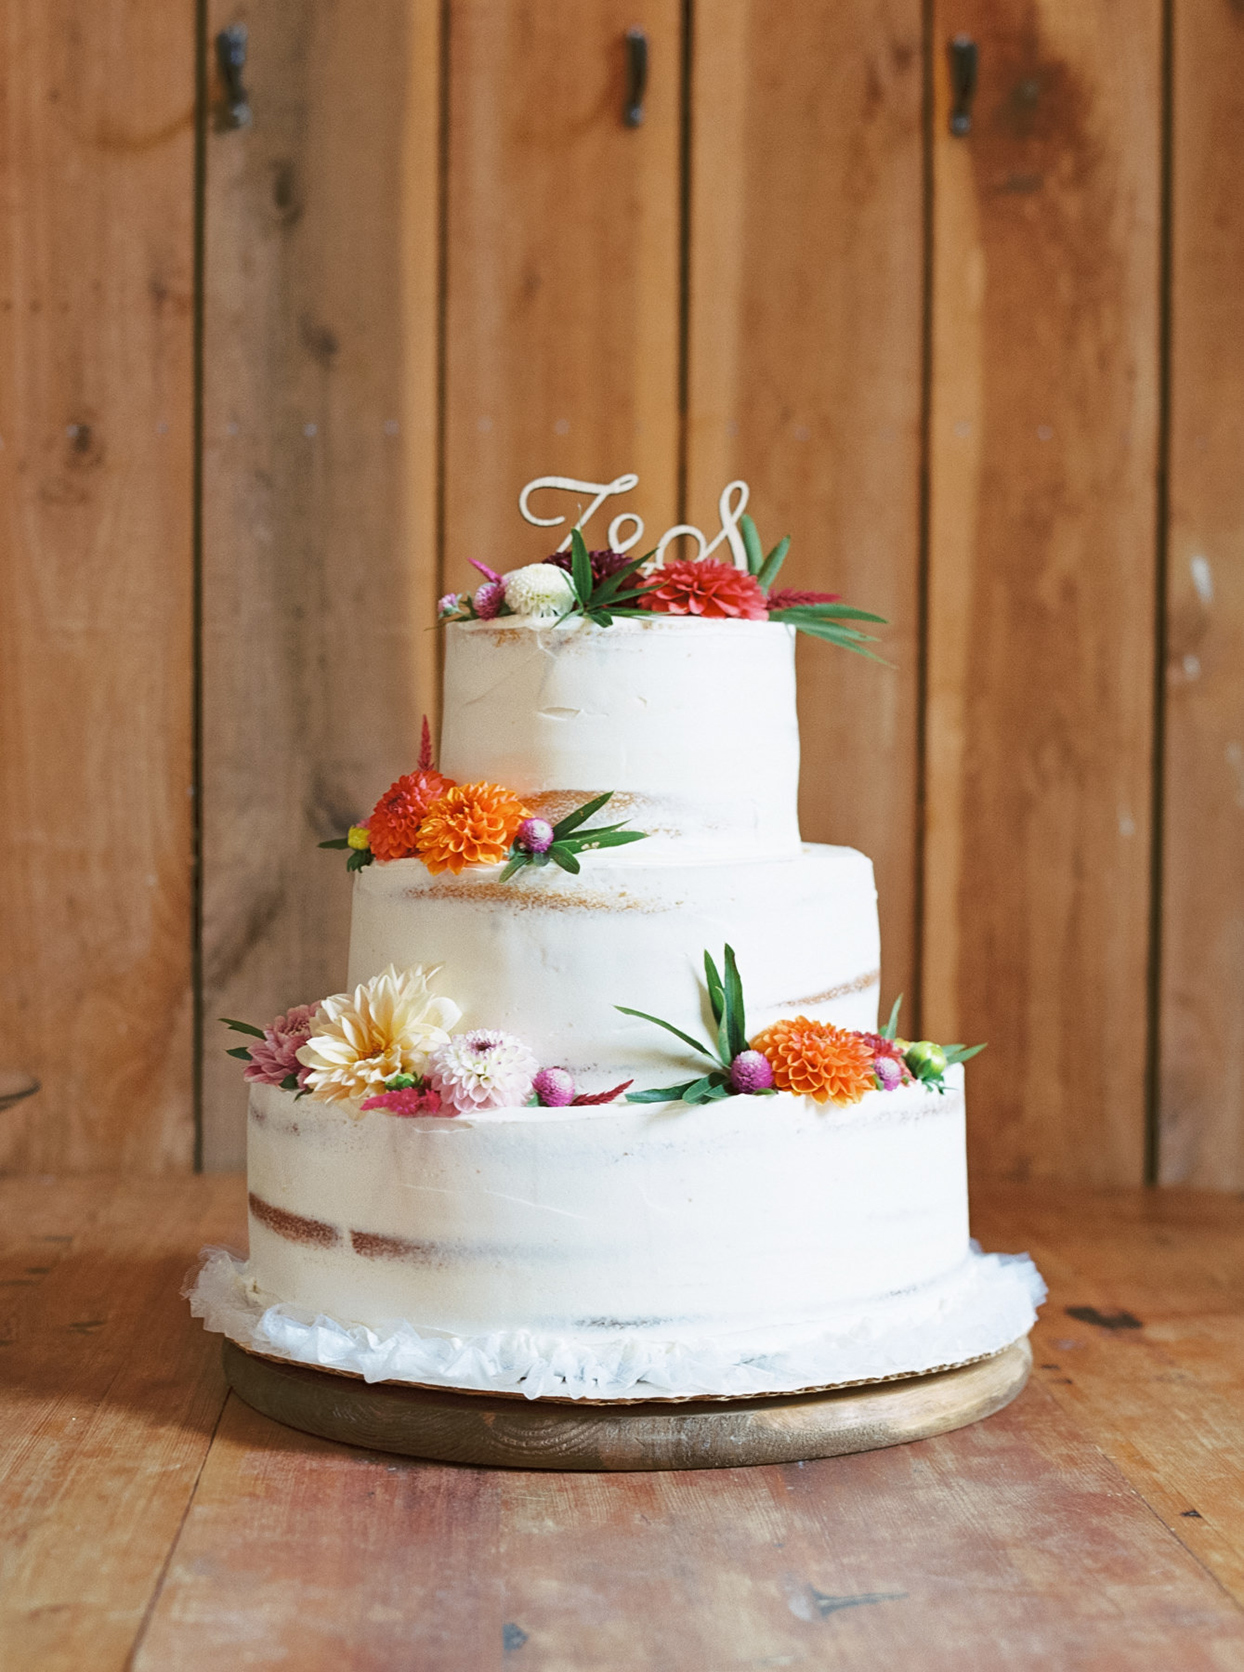 three tiered white frosted wedding cake with colorful floral accents